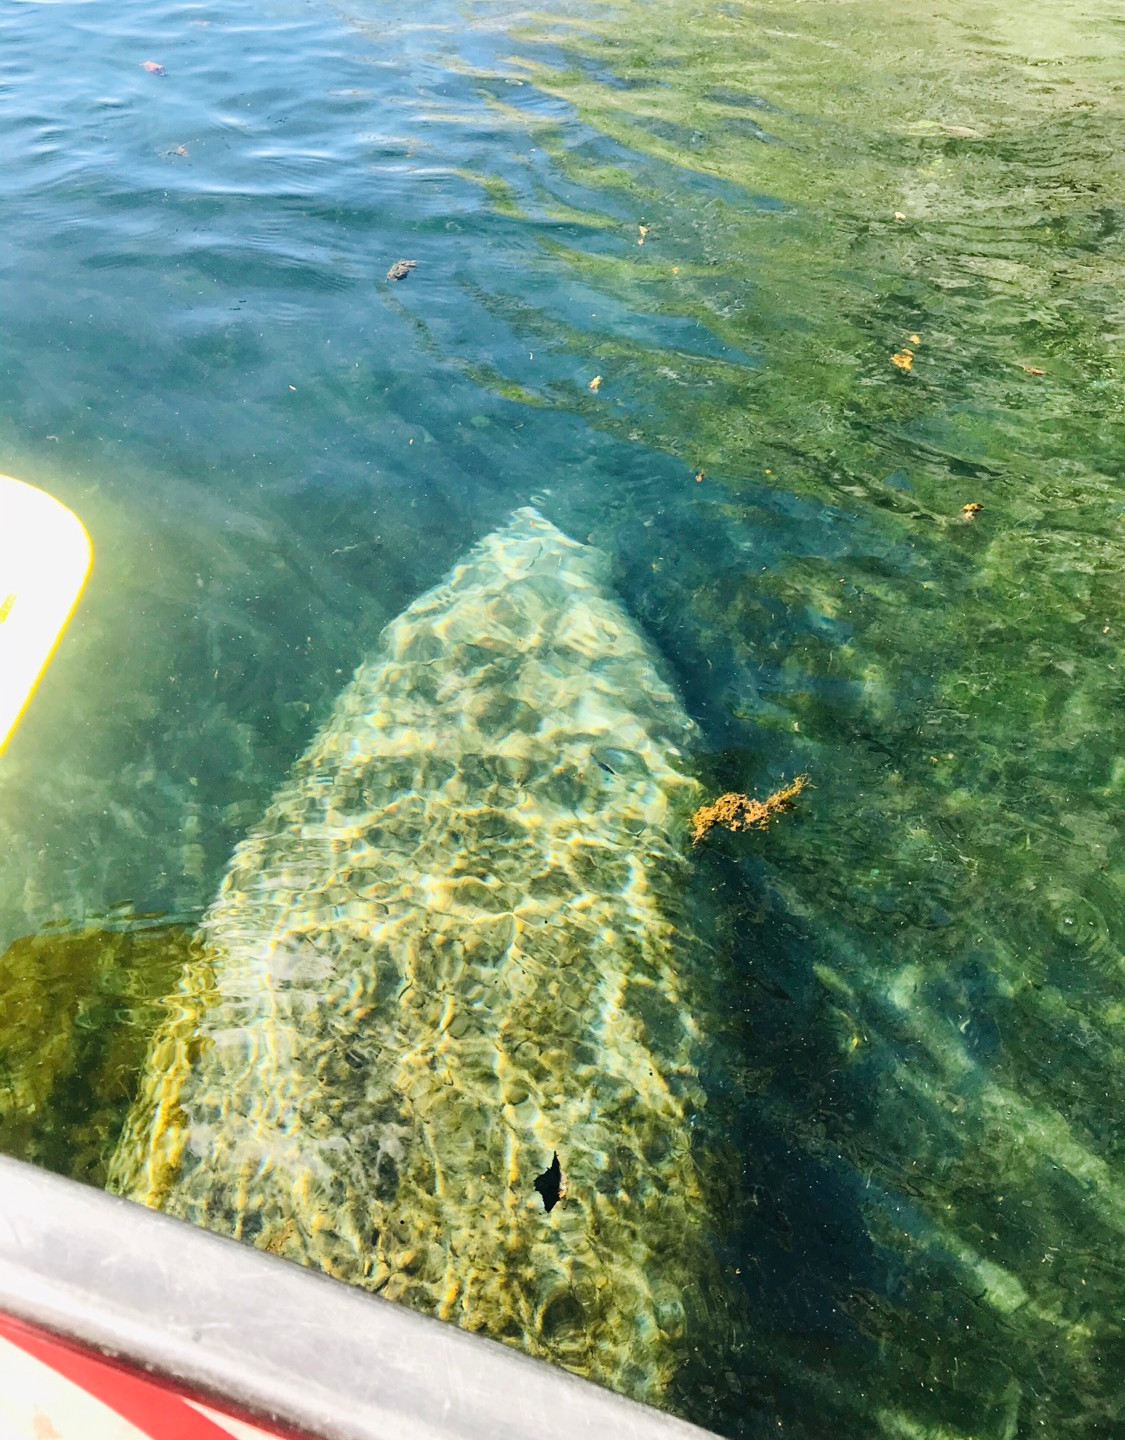 Manatees are also known as a sea cow